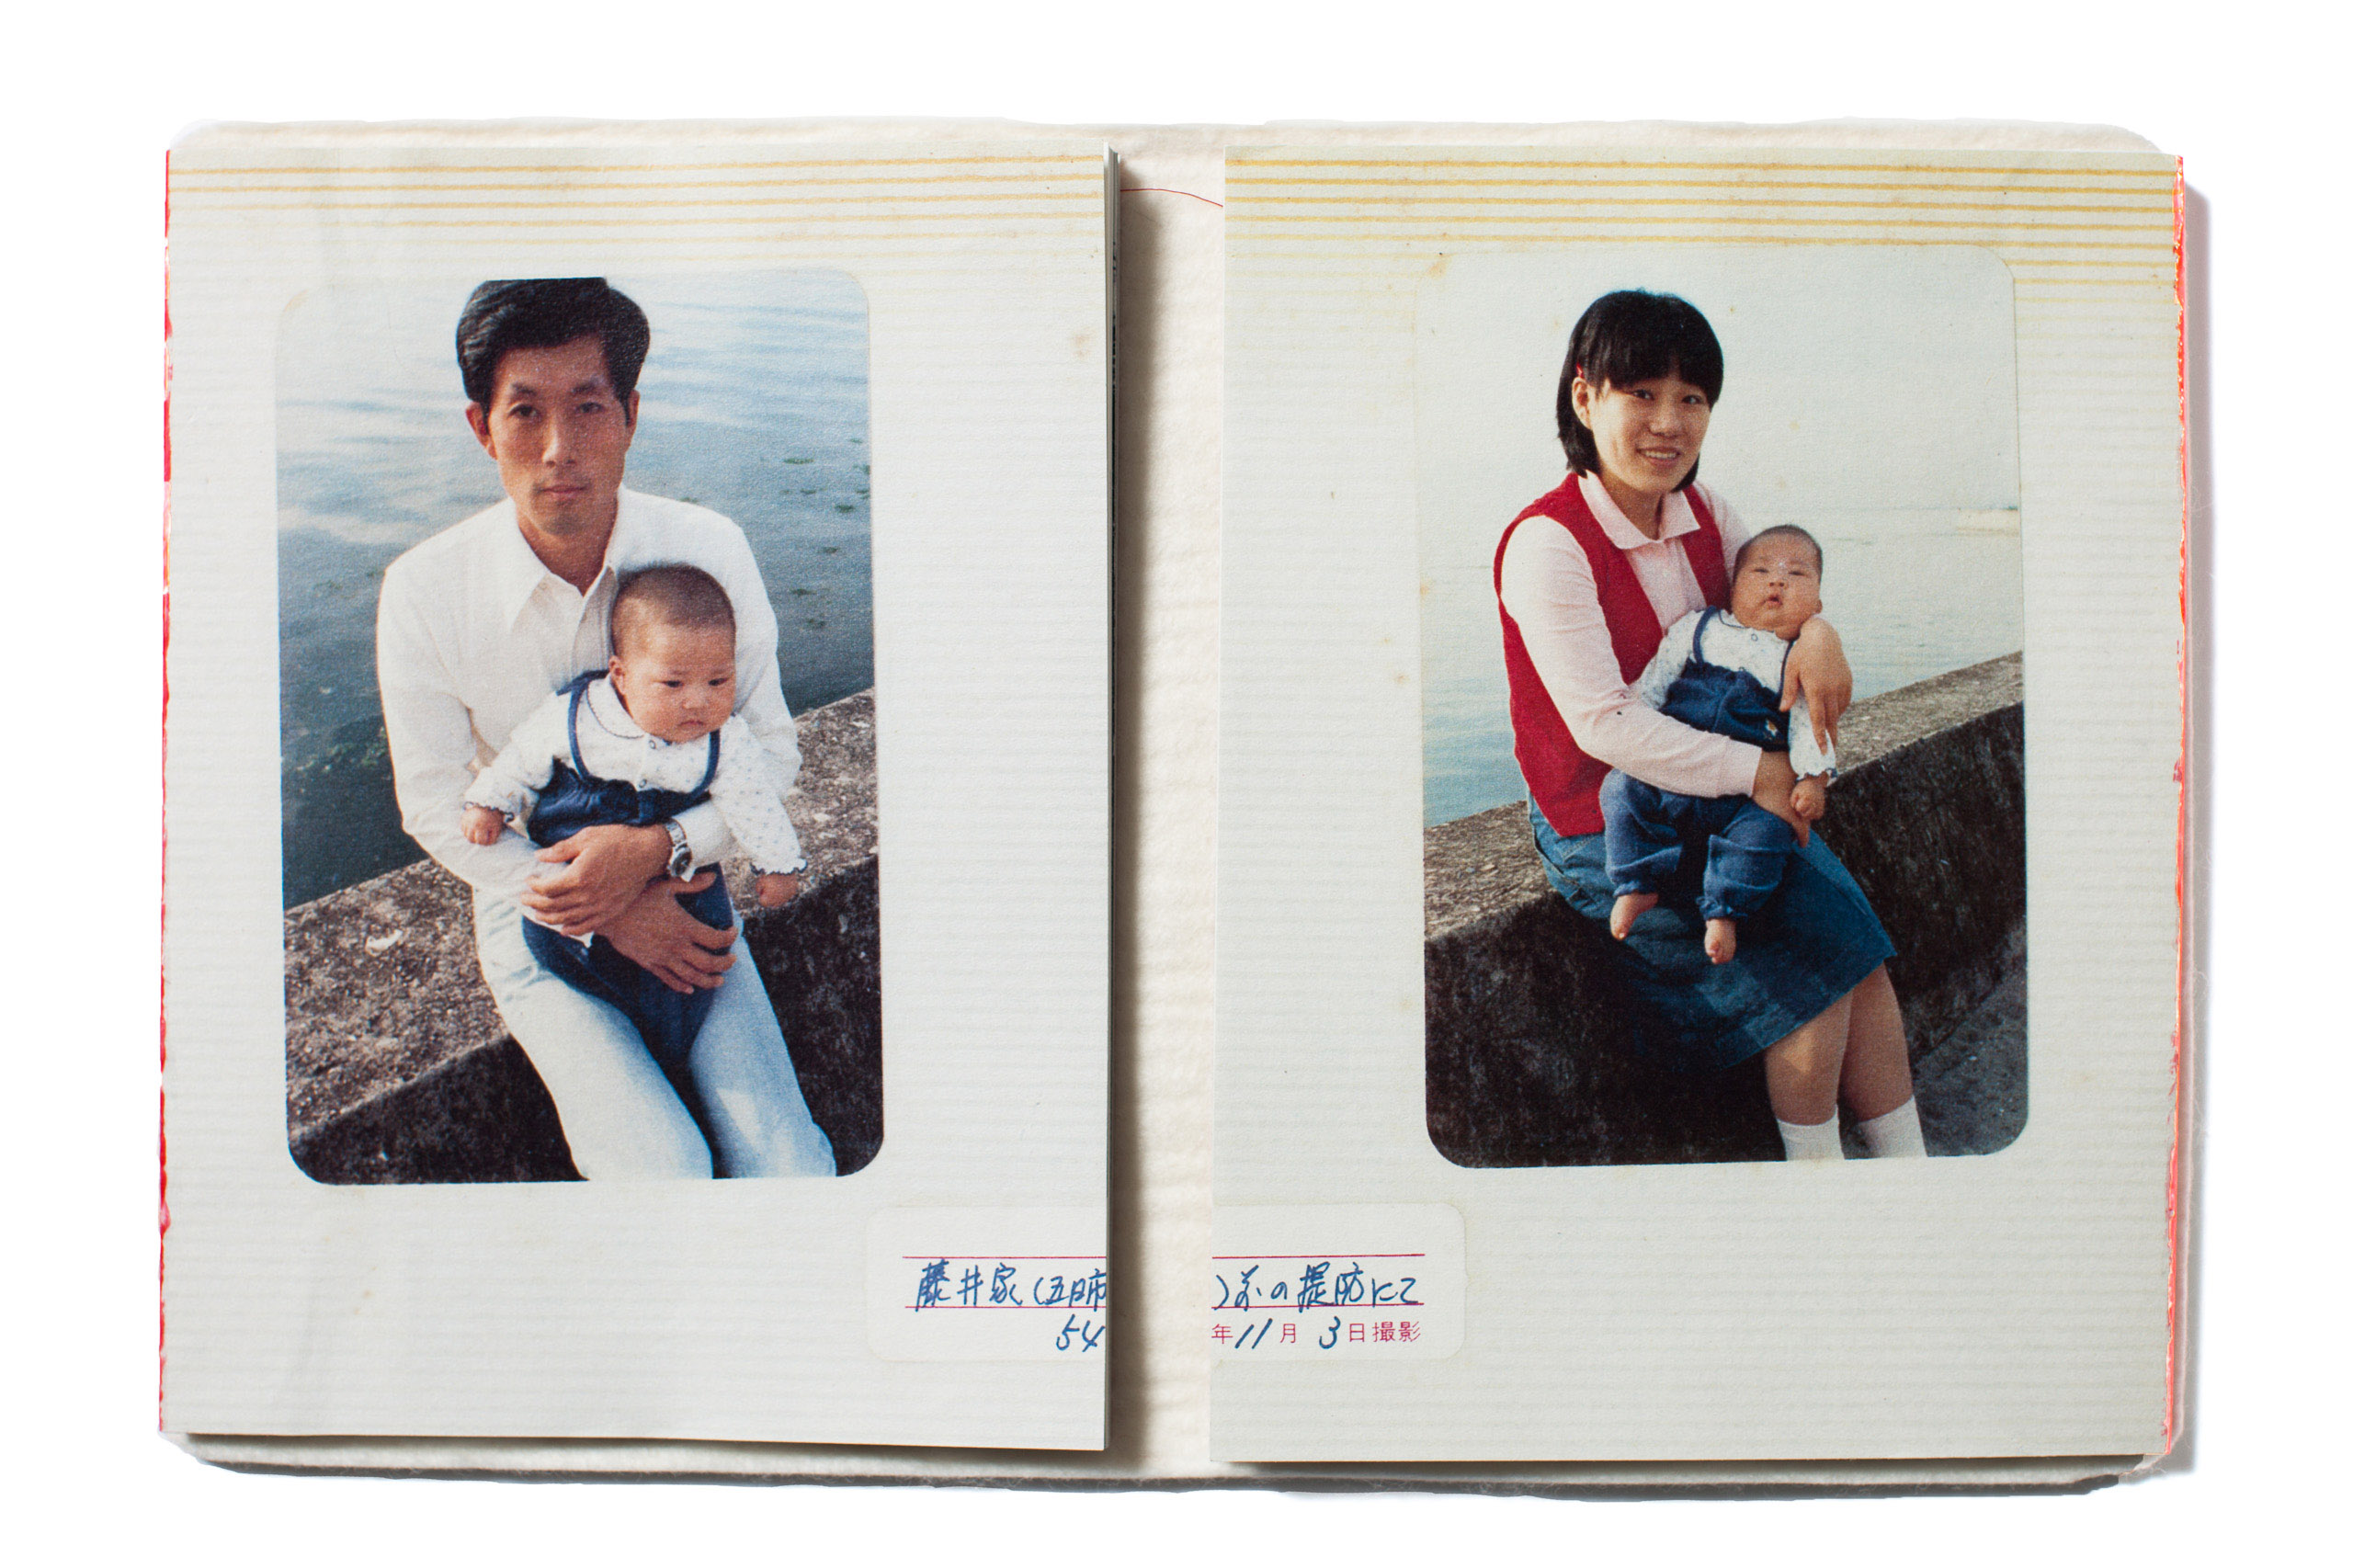 """""""The split binding allows the reader to page through one side and then the other, but the powerfulness comes from pairing both halves together. In this delicate and personal family album, Yoshikatsu Fujii ties the memory of his family back together with the cultural metaphor of red string.""""                                                                       - Larissa Leclair, Founder of the Indie Photobook Library"""